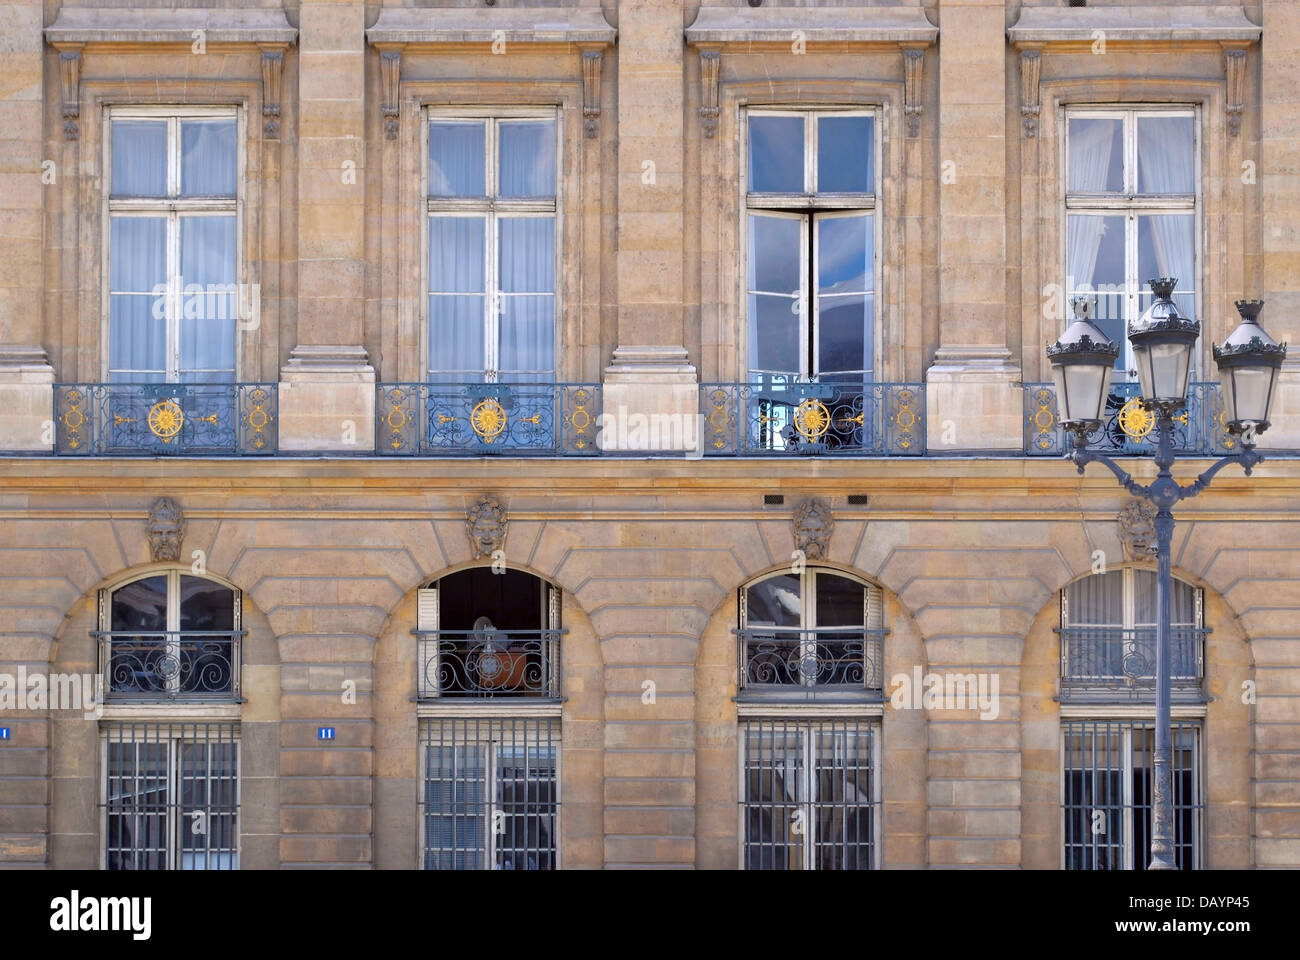 facade with large windows and a balcony hotel ritz in paris stock